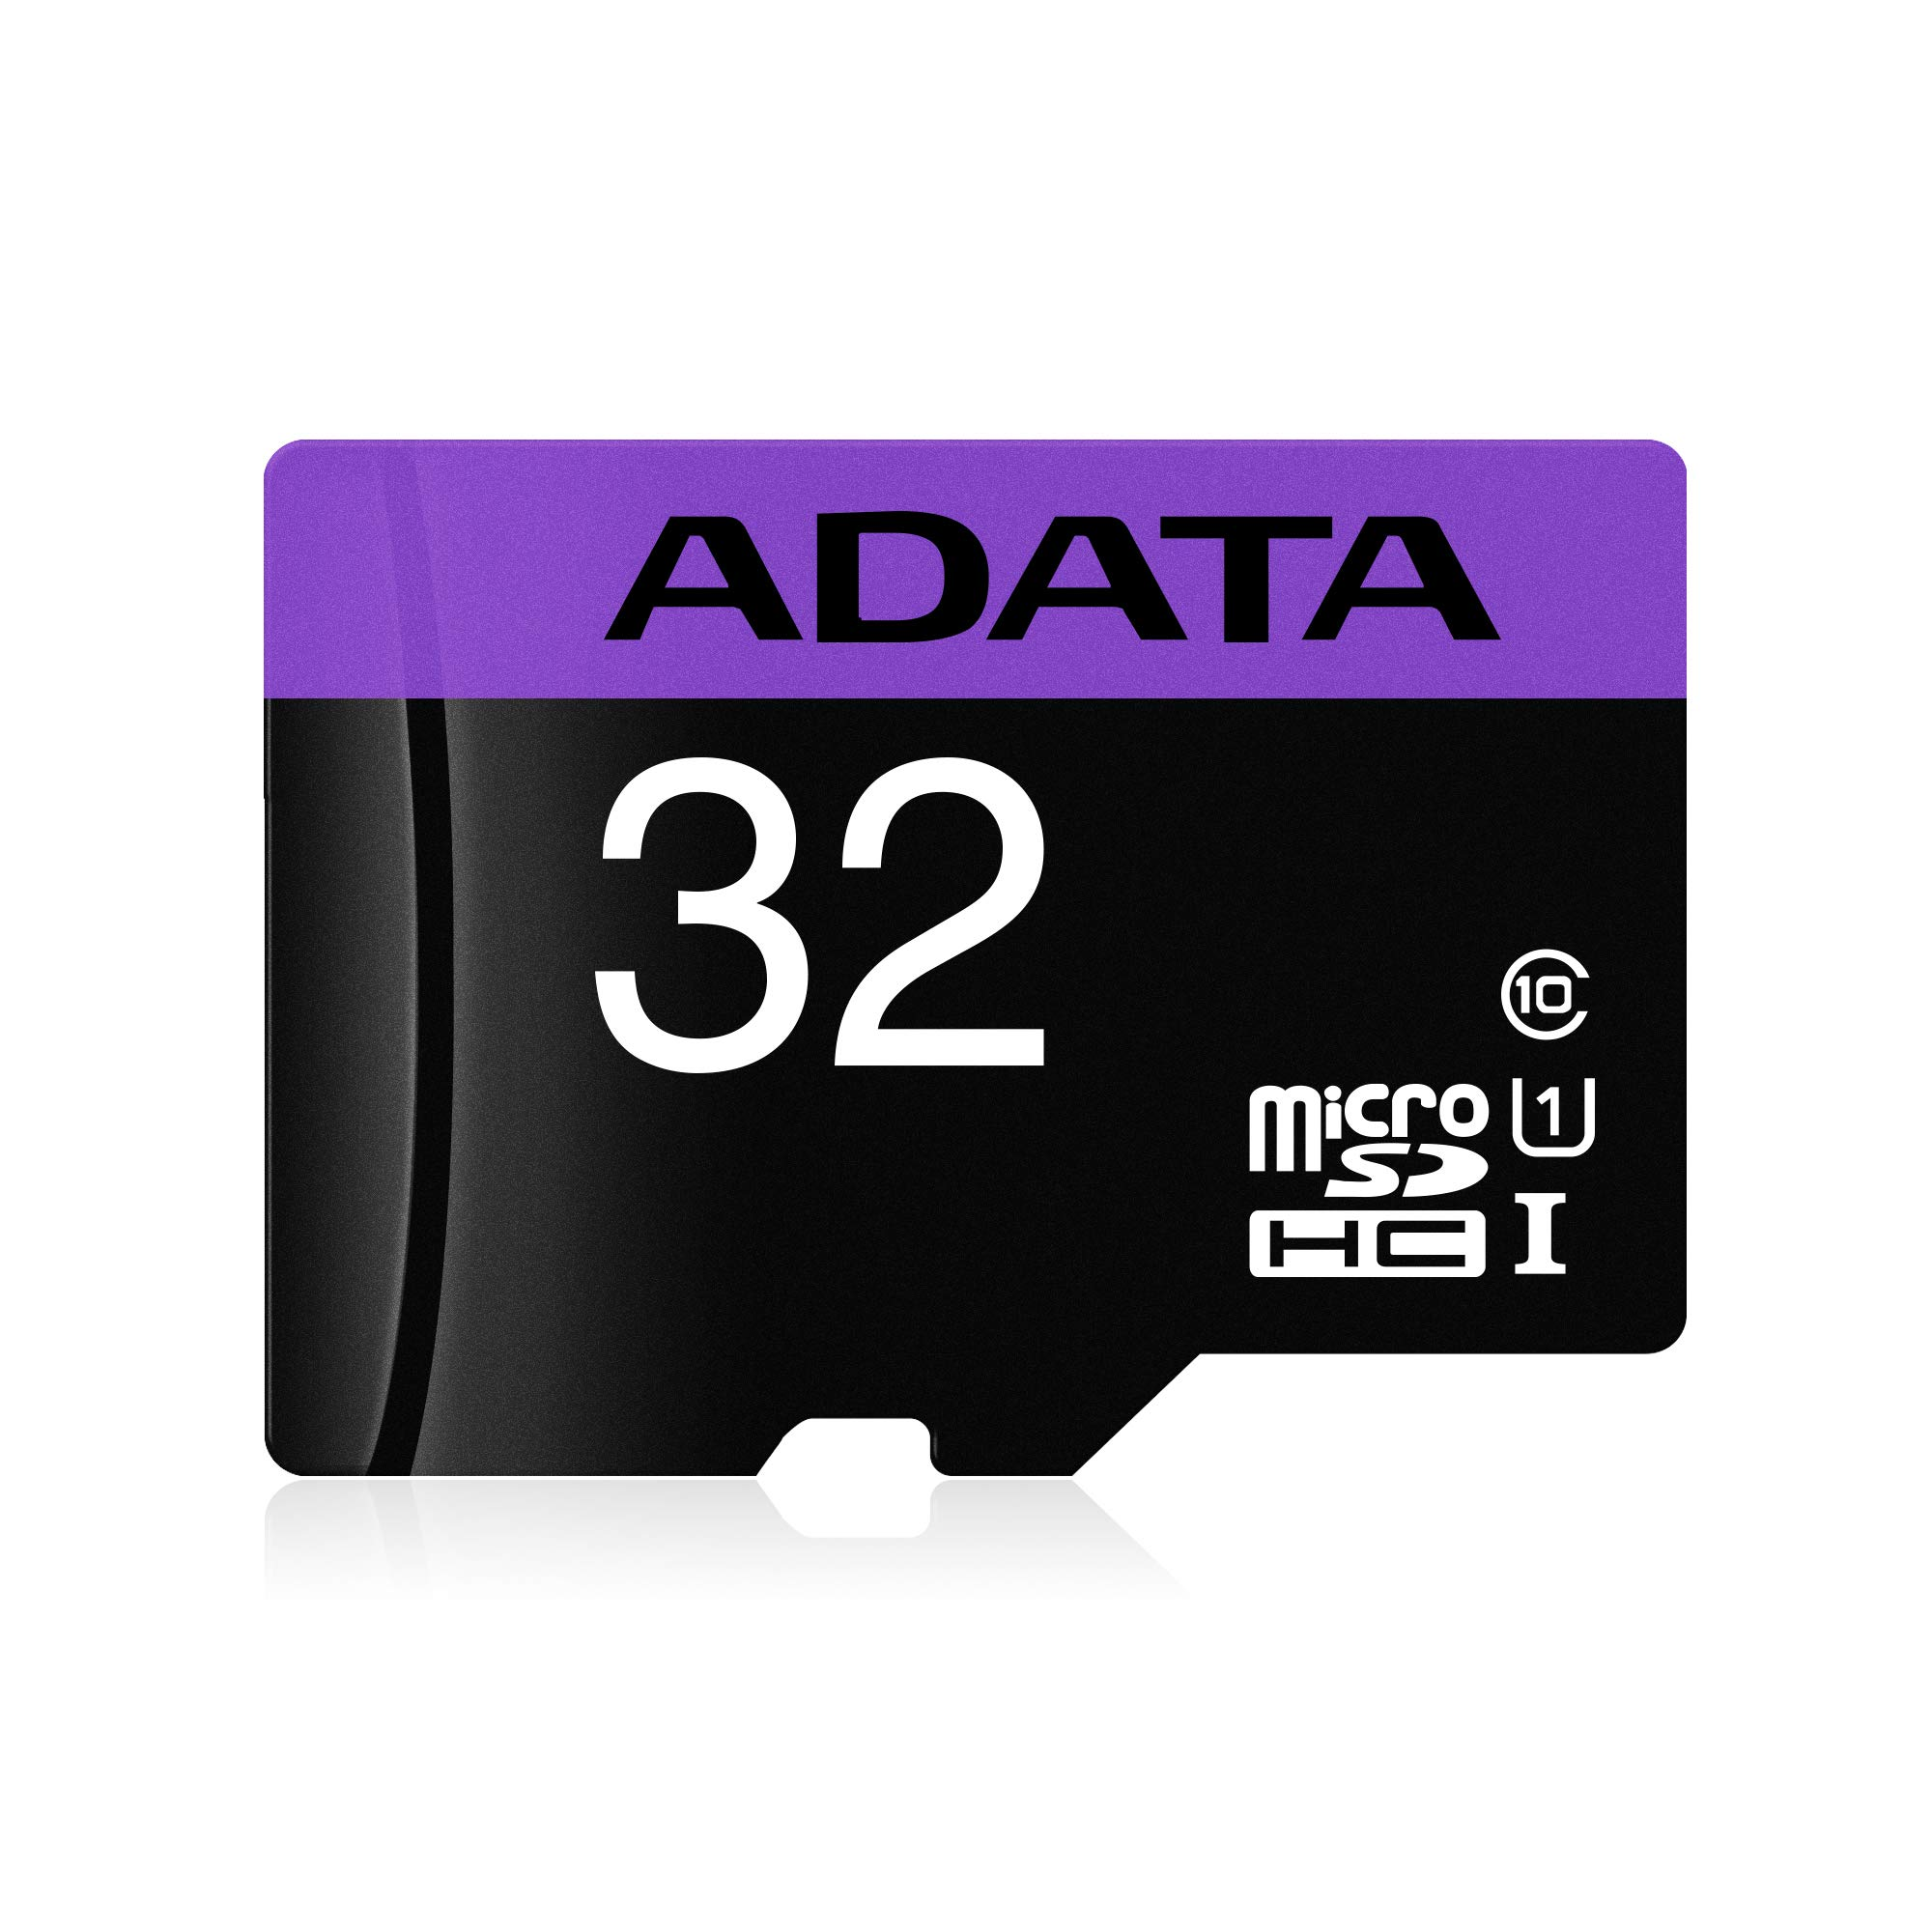 Adata Premier A1 32GB Class 10 UHS-I microSD Card | MicroSDHC/SDXC with Speed up to 100MB/s | V10 Series Memory Card | AUSDH32GUICL10A1-R | Purple (B077T3RRKR) Amazon Price History, Amazon Price Tracker